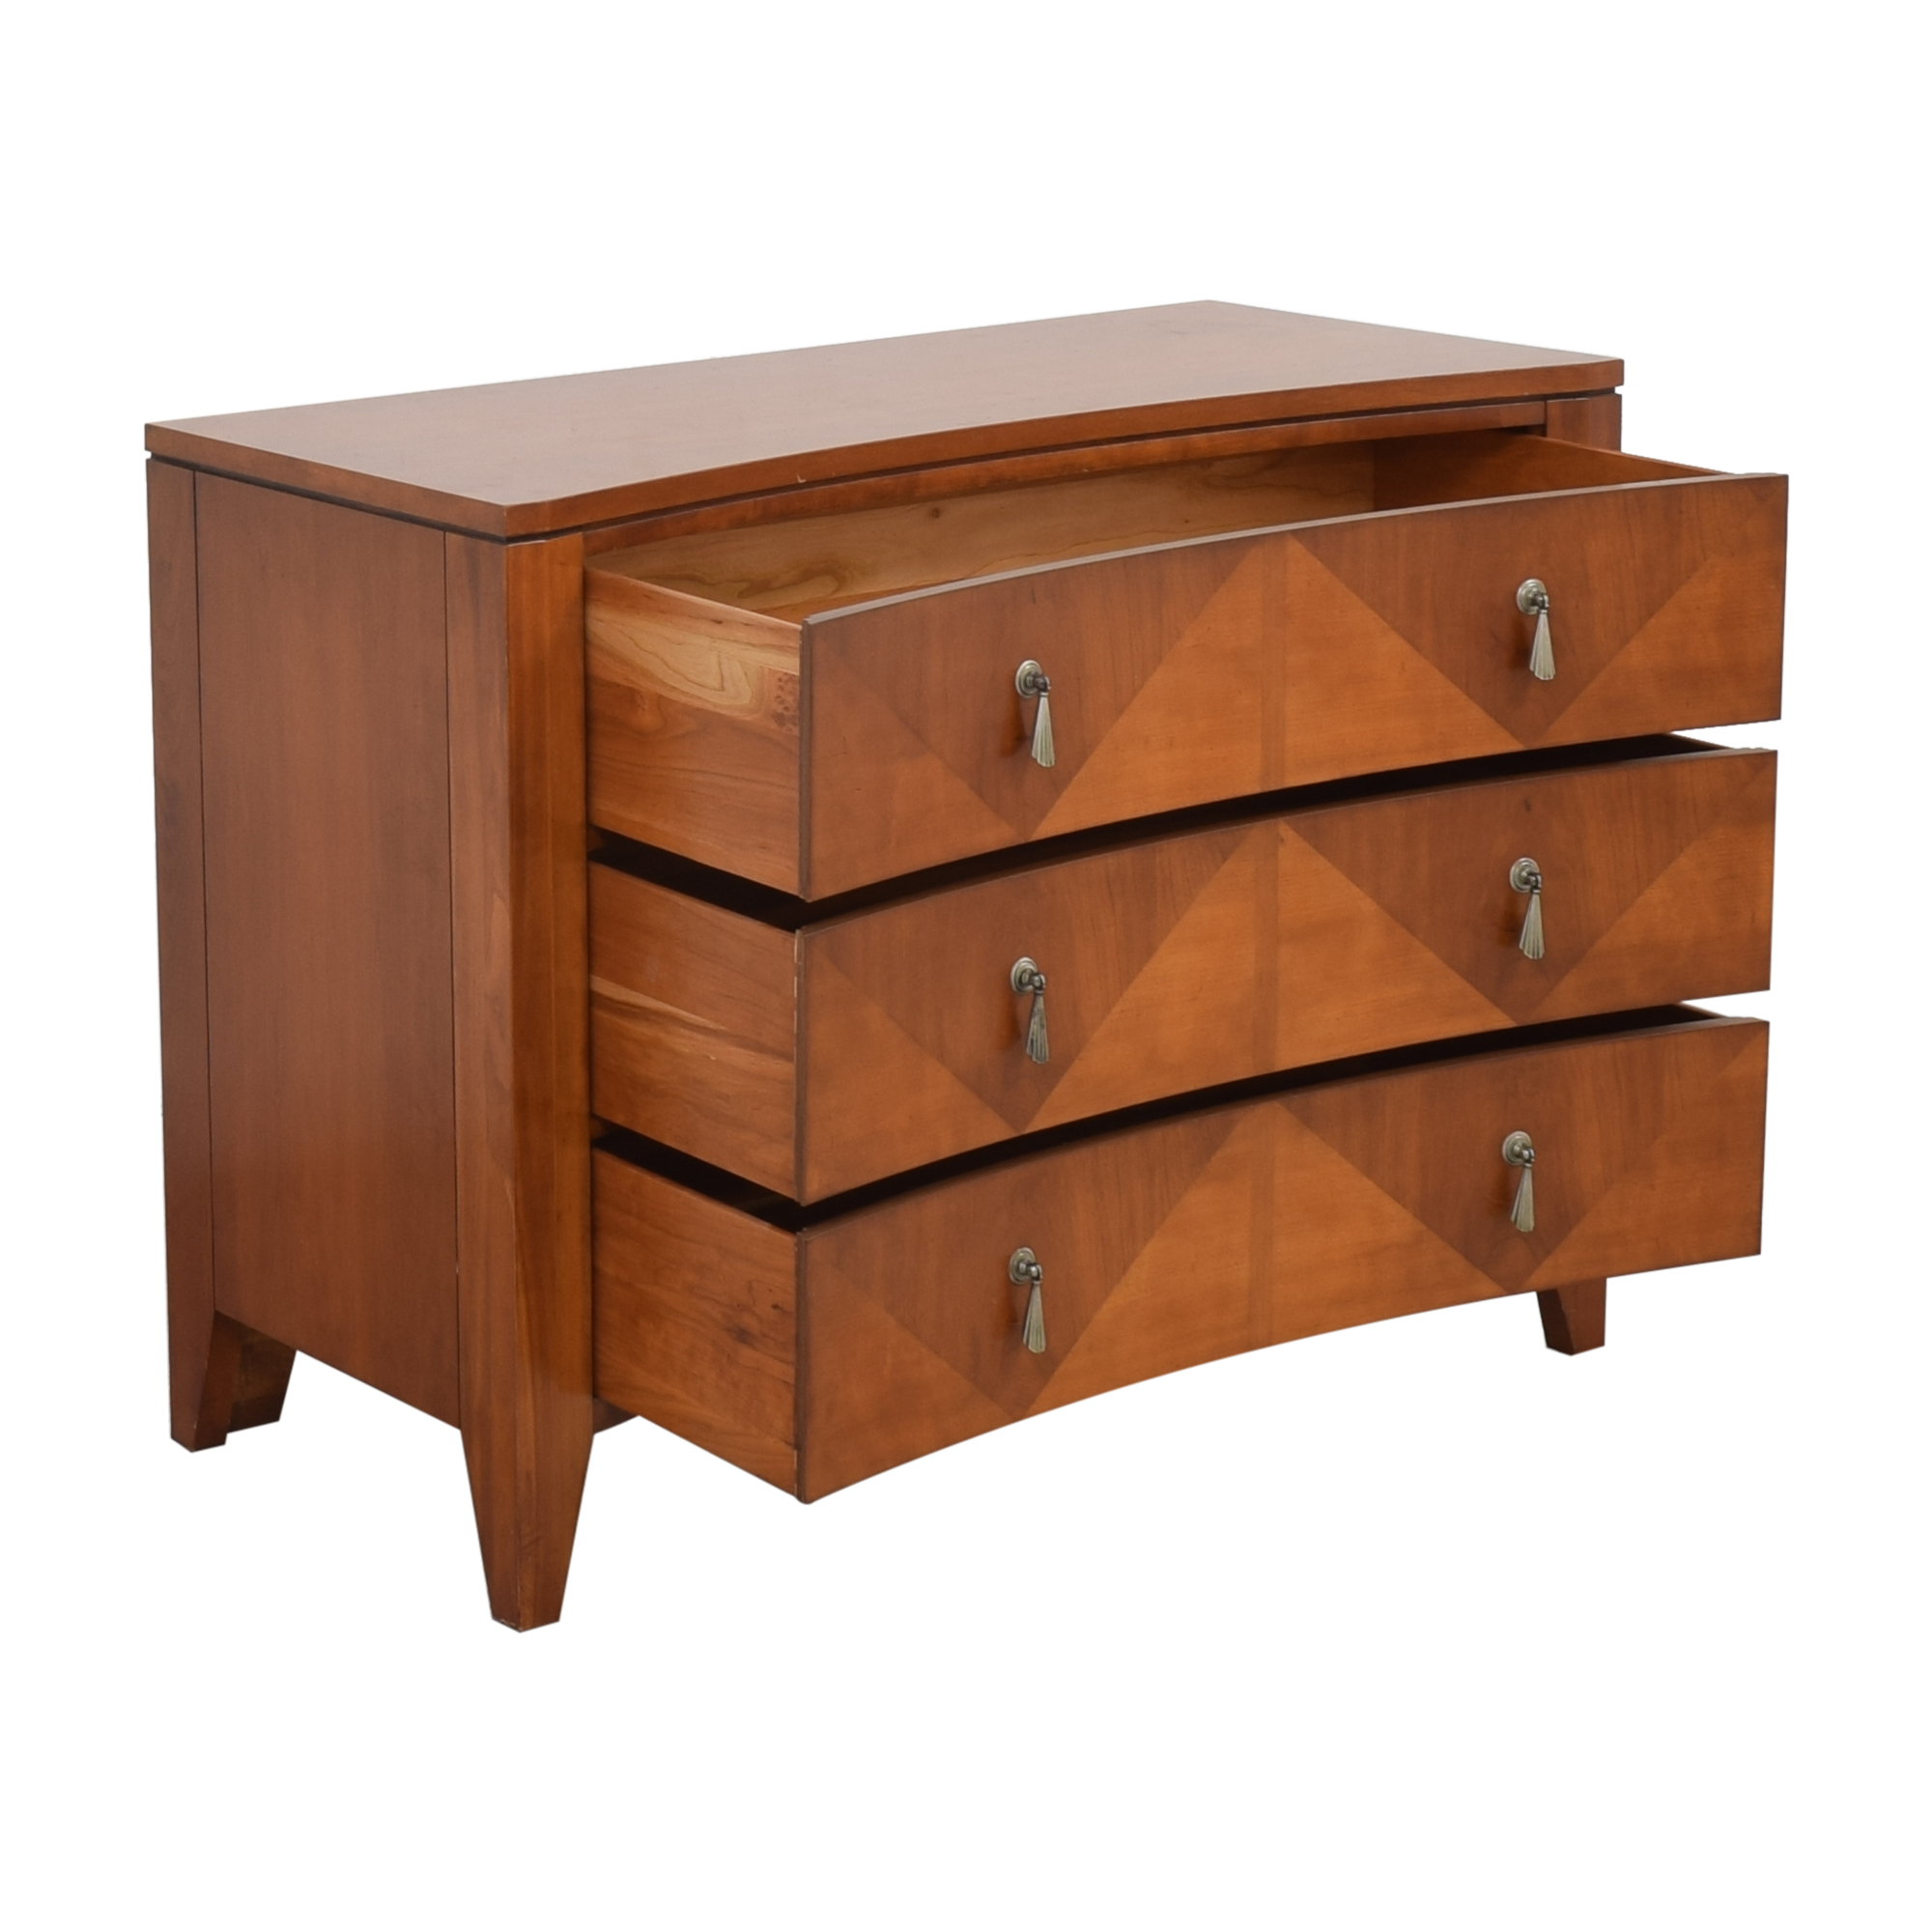 Ethan Allen Avenue Three Drawer Chest sale